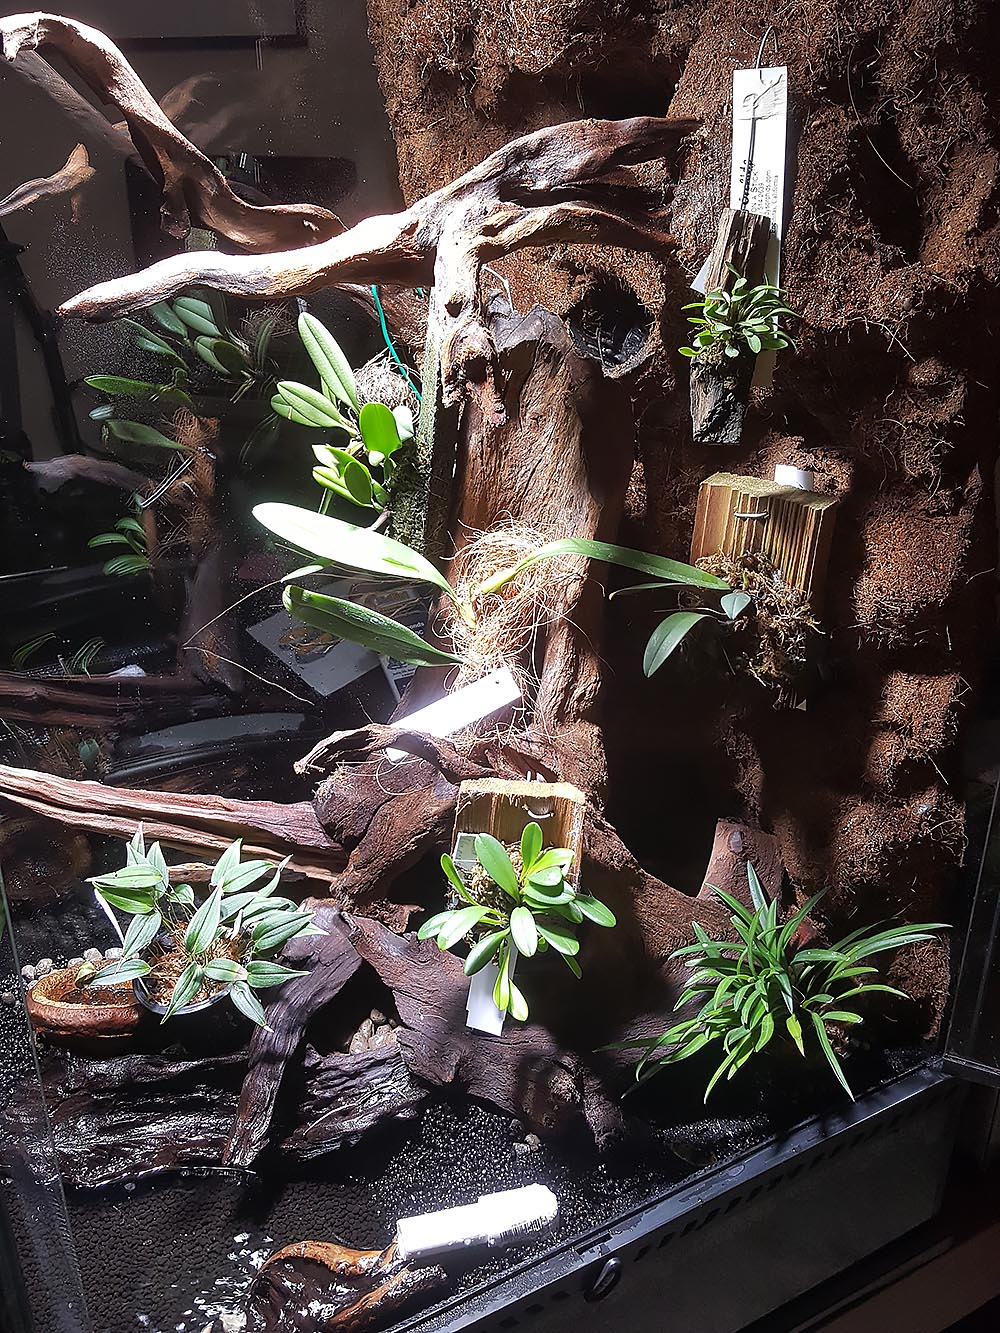 The vivarium receives its first plants; orchids still mounted as they arrived, acclimating to life in the vivarium before being selected for more permanent mounting.